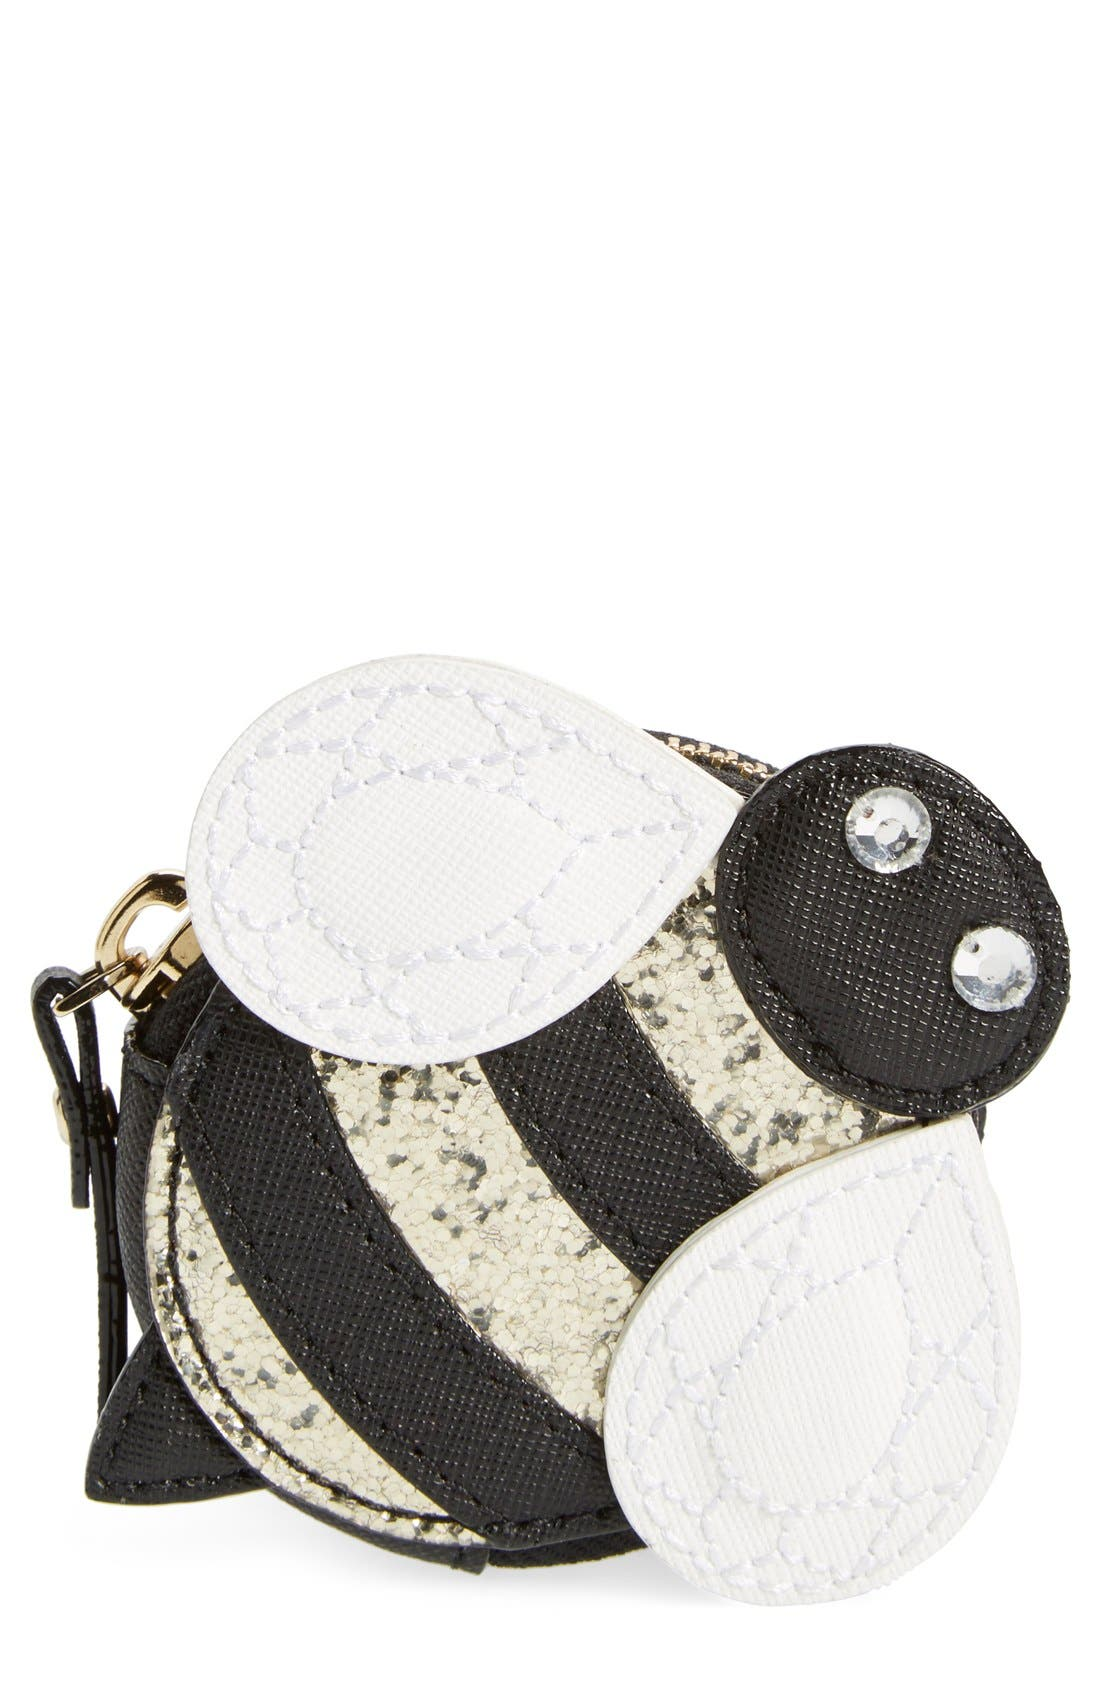 Alternate Image 1 Selected - kate spade new york 'bee' leather coin purse